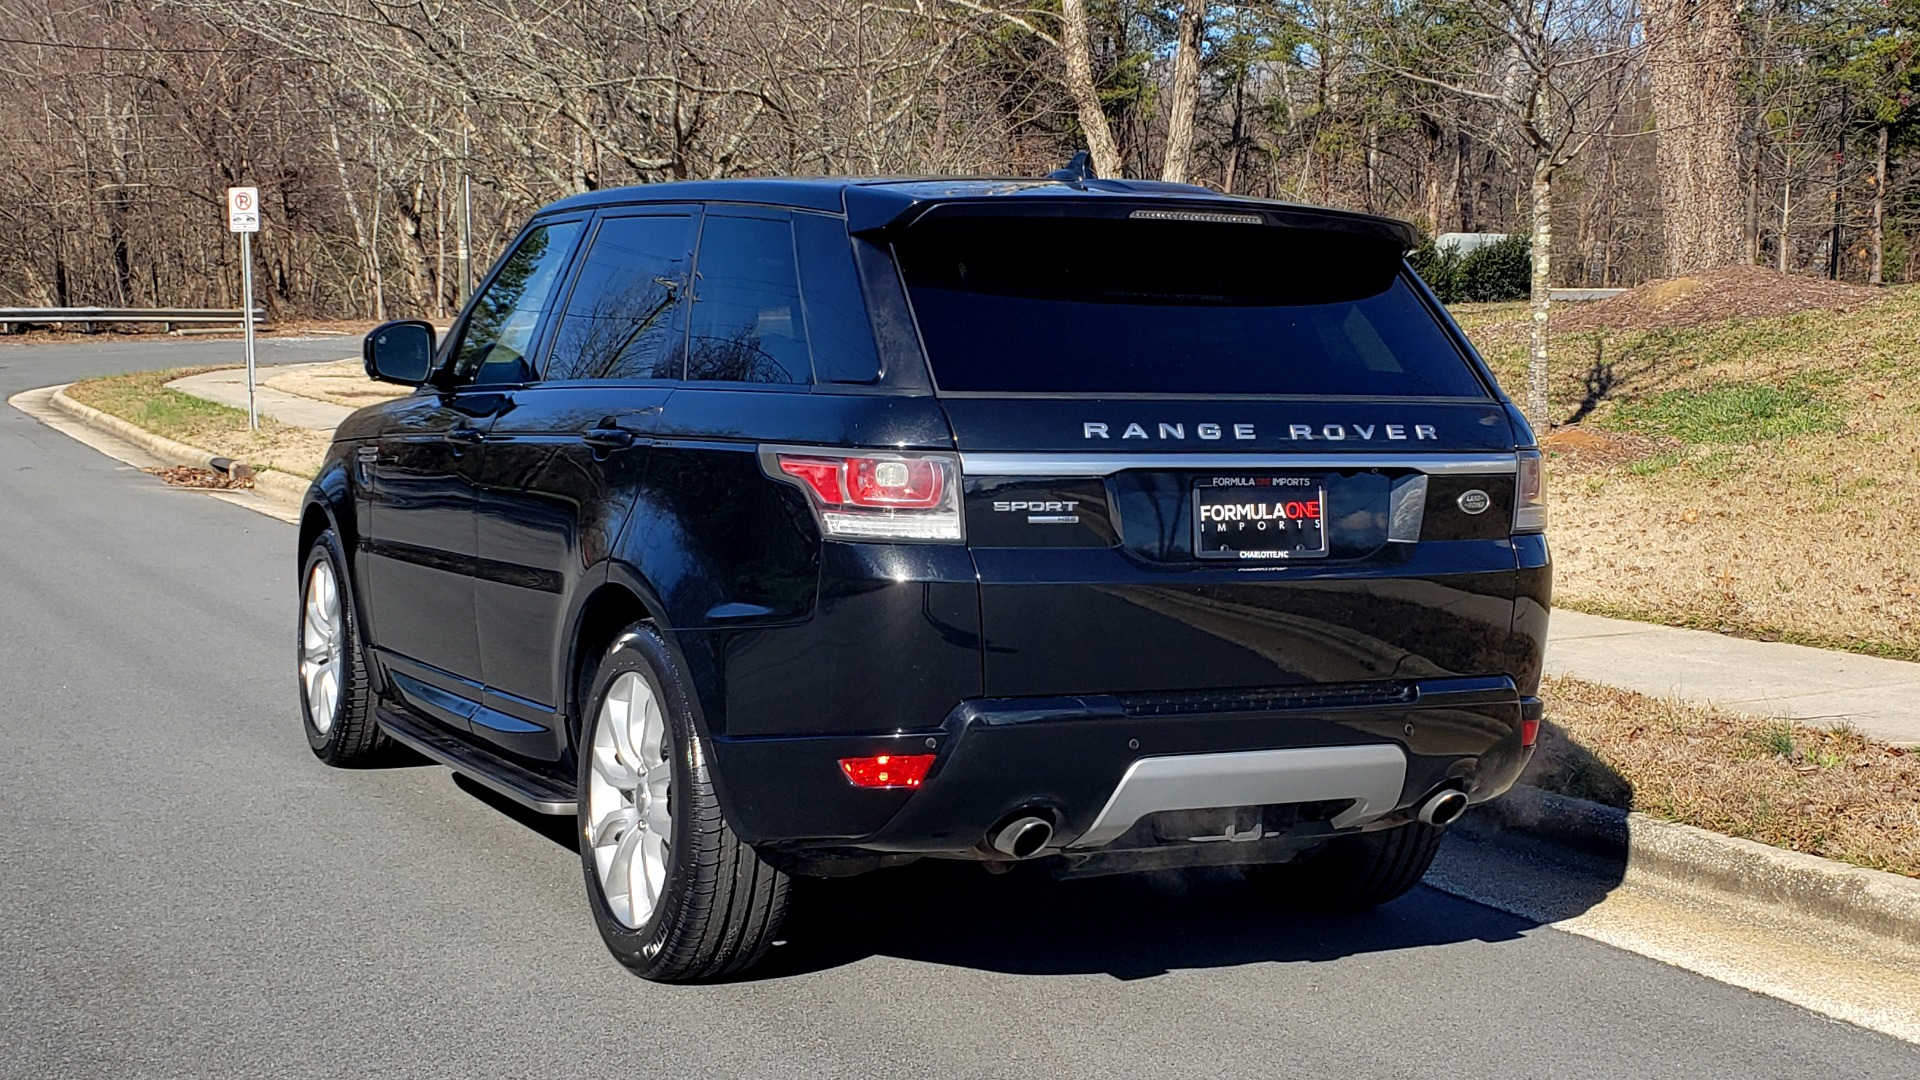 Used 2015 Land Rover RANGE ROVER HSE / 3.0L SC V6 / 8-SPD AUTO / NAV / PANO ROOF / REARVIEW for sale Sold at Formula Imports in Charlotte NC 28227 4